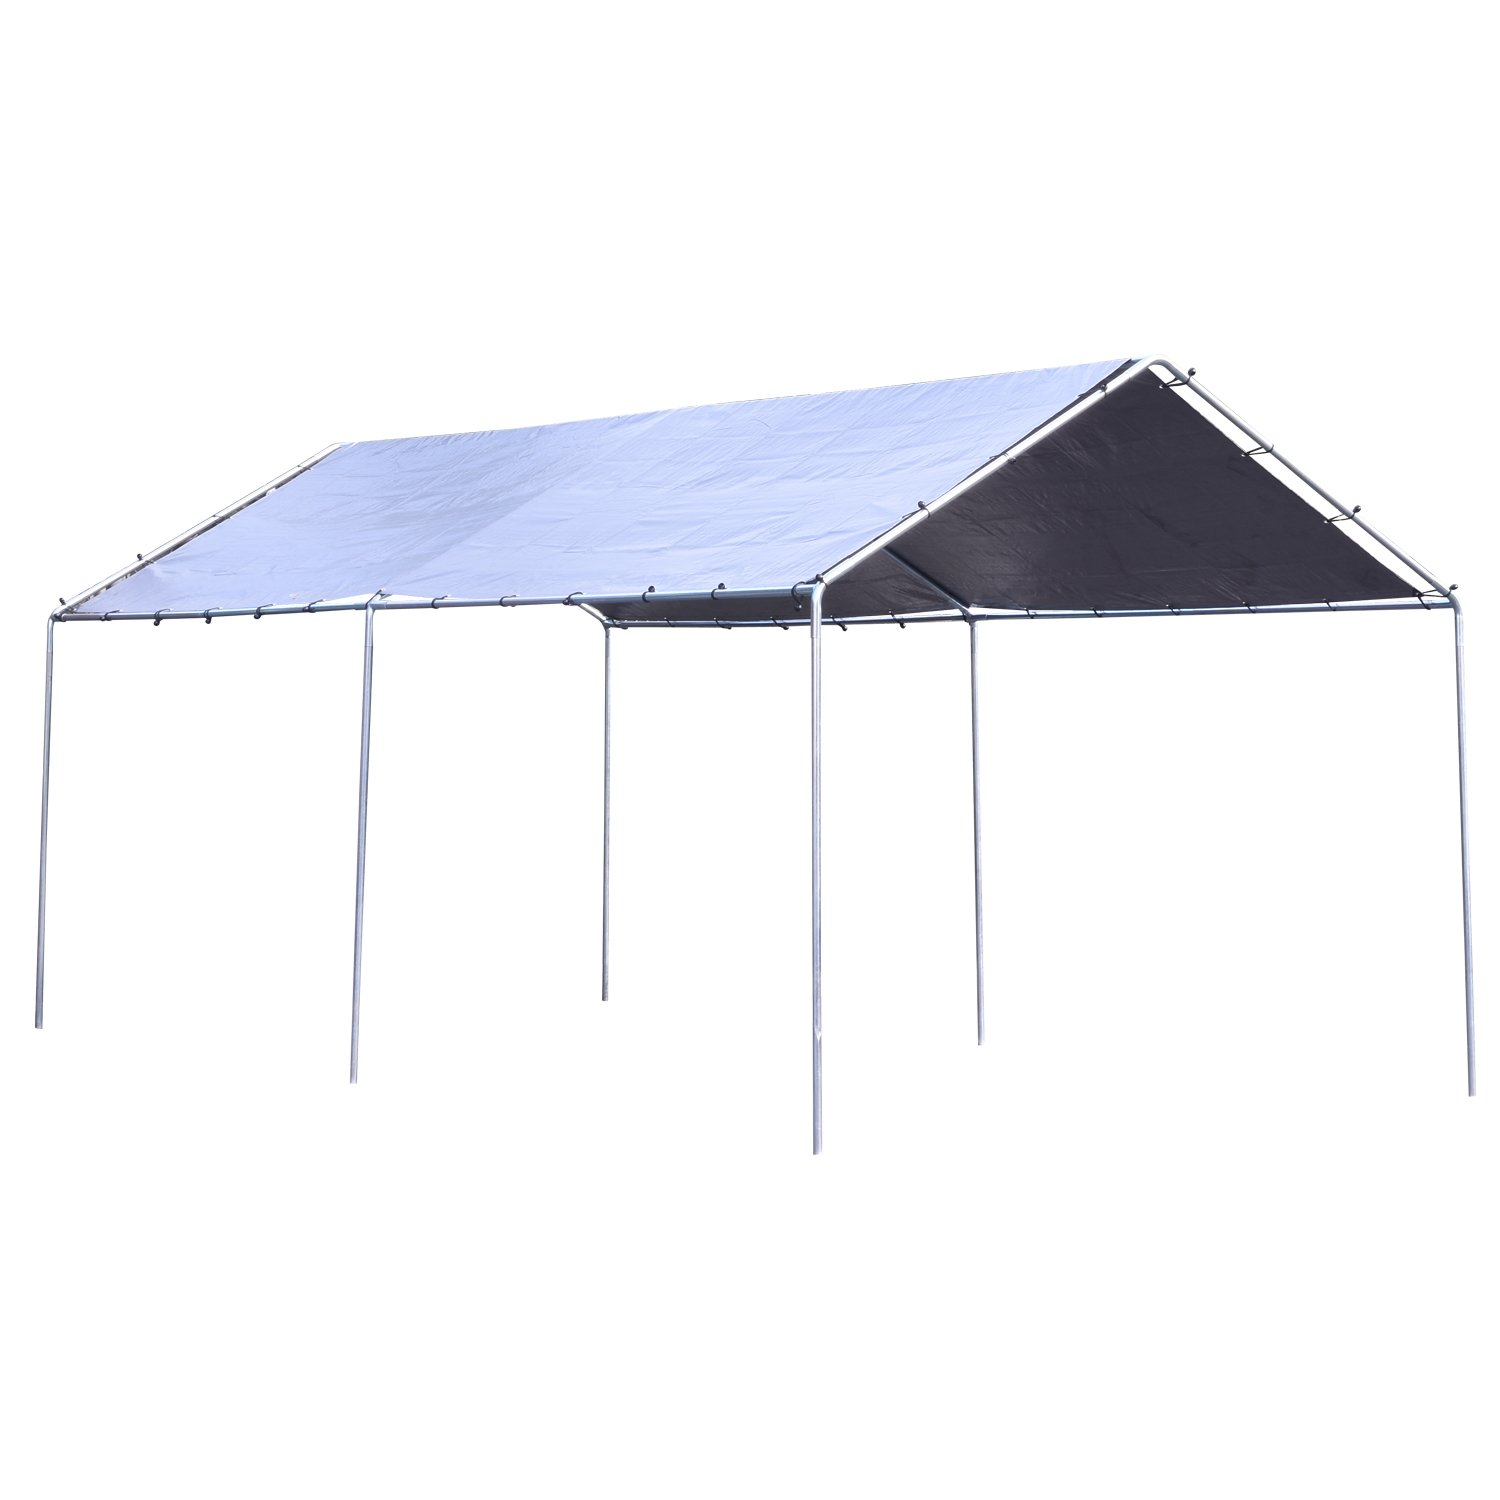 best service 667c3 caadf 12x20 heavy duty all purpose canopy section fea market or cart port (free  shipping)